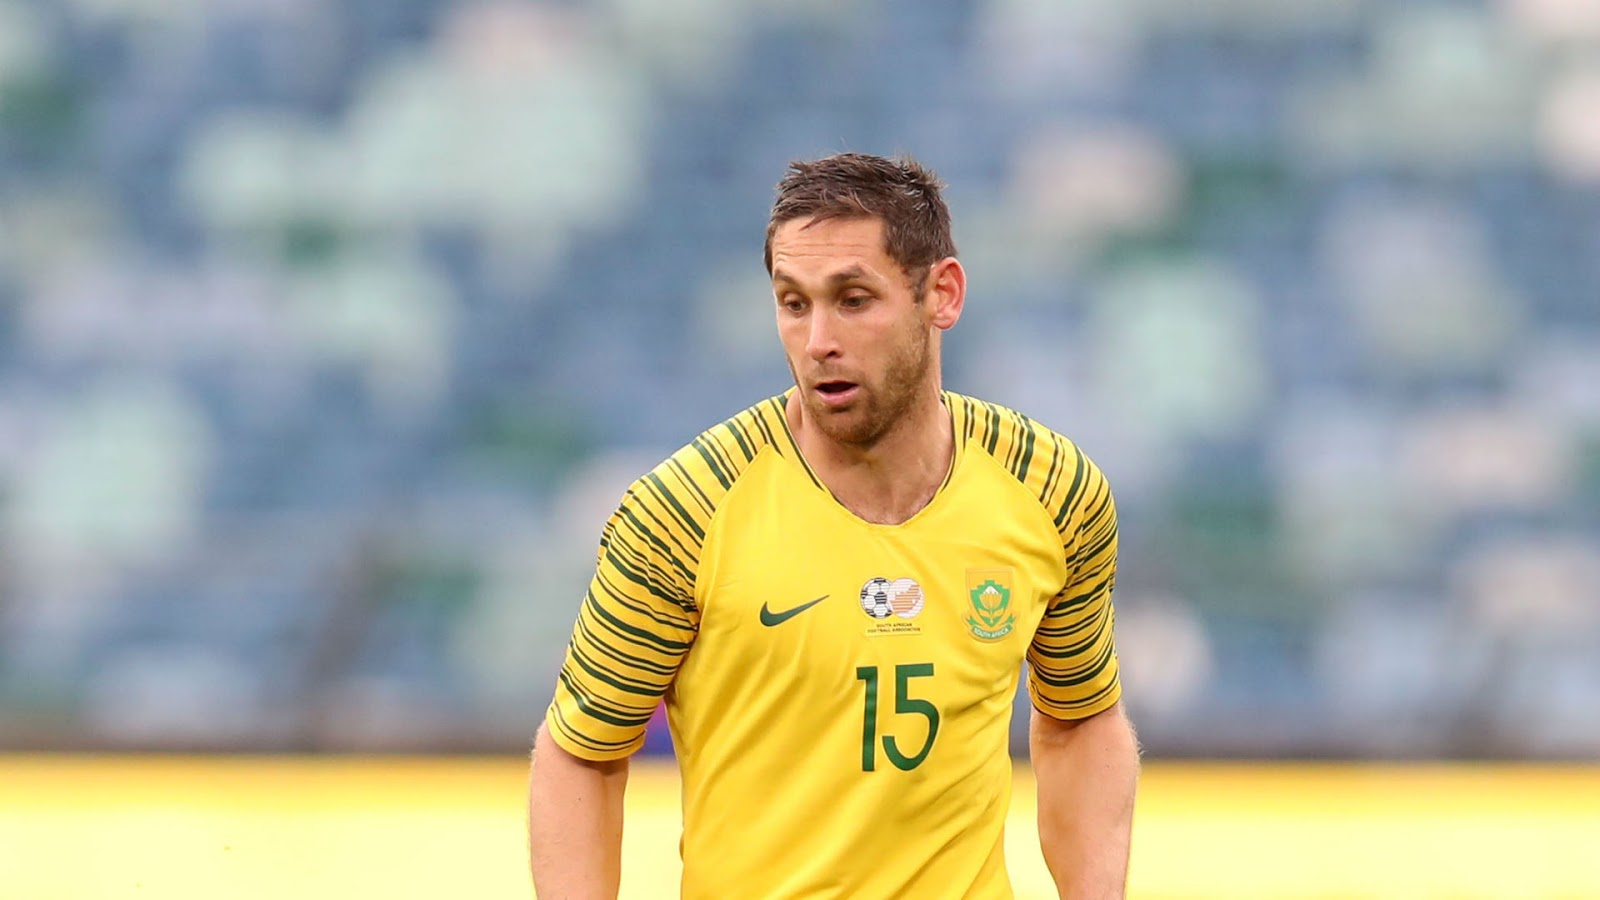 Veteran midfielder Dean Furman